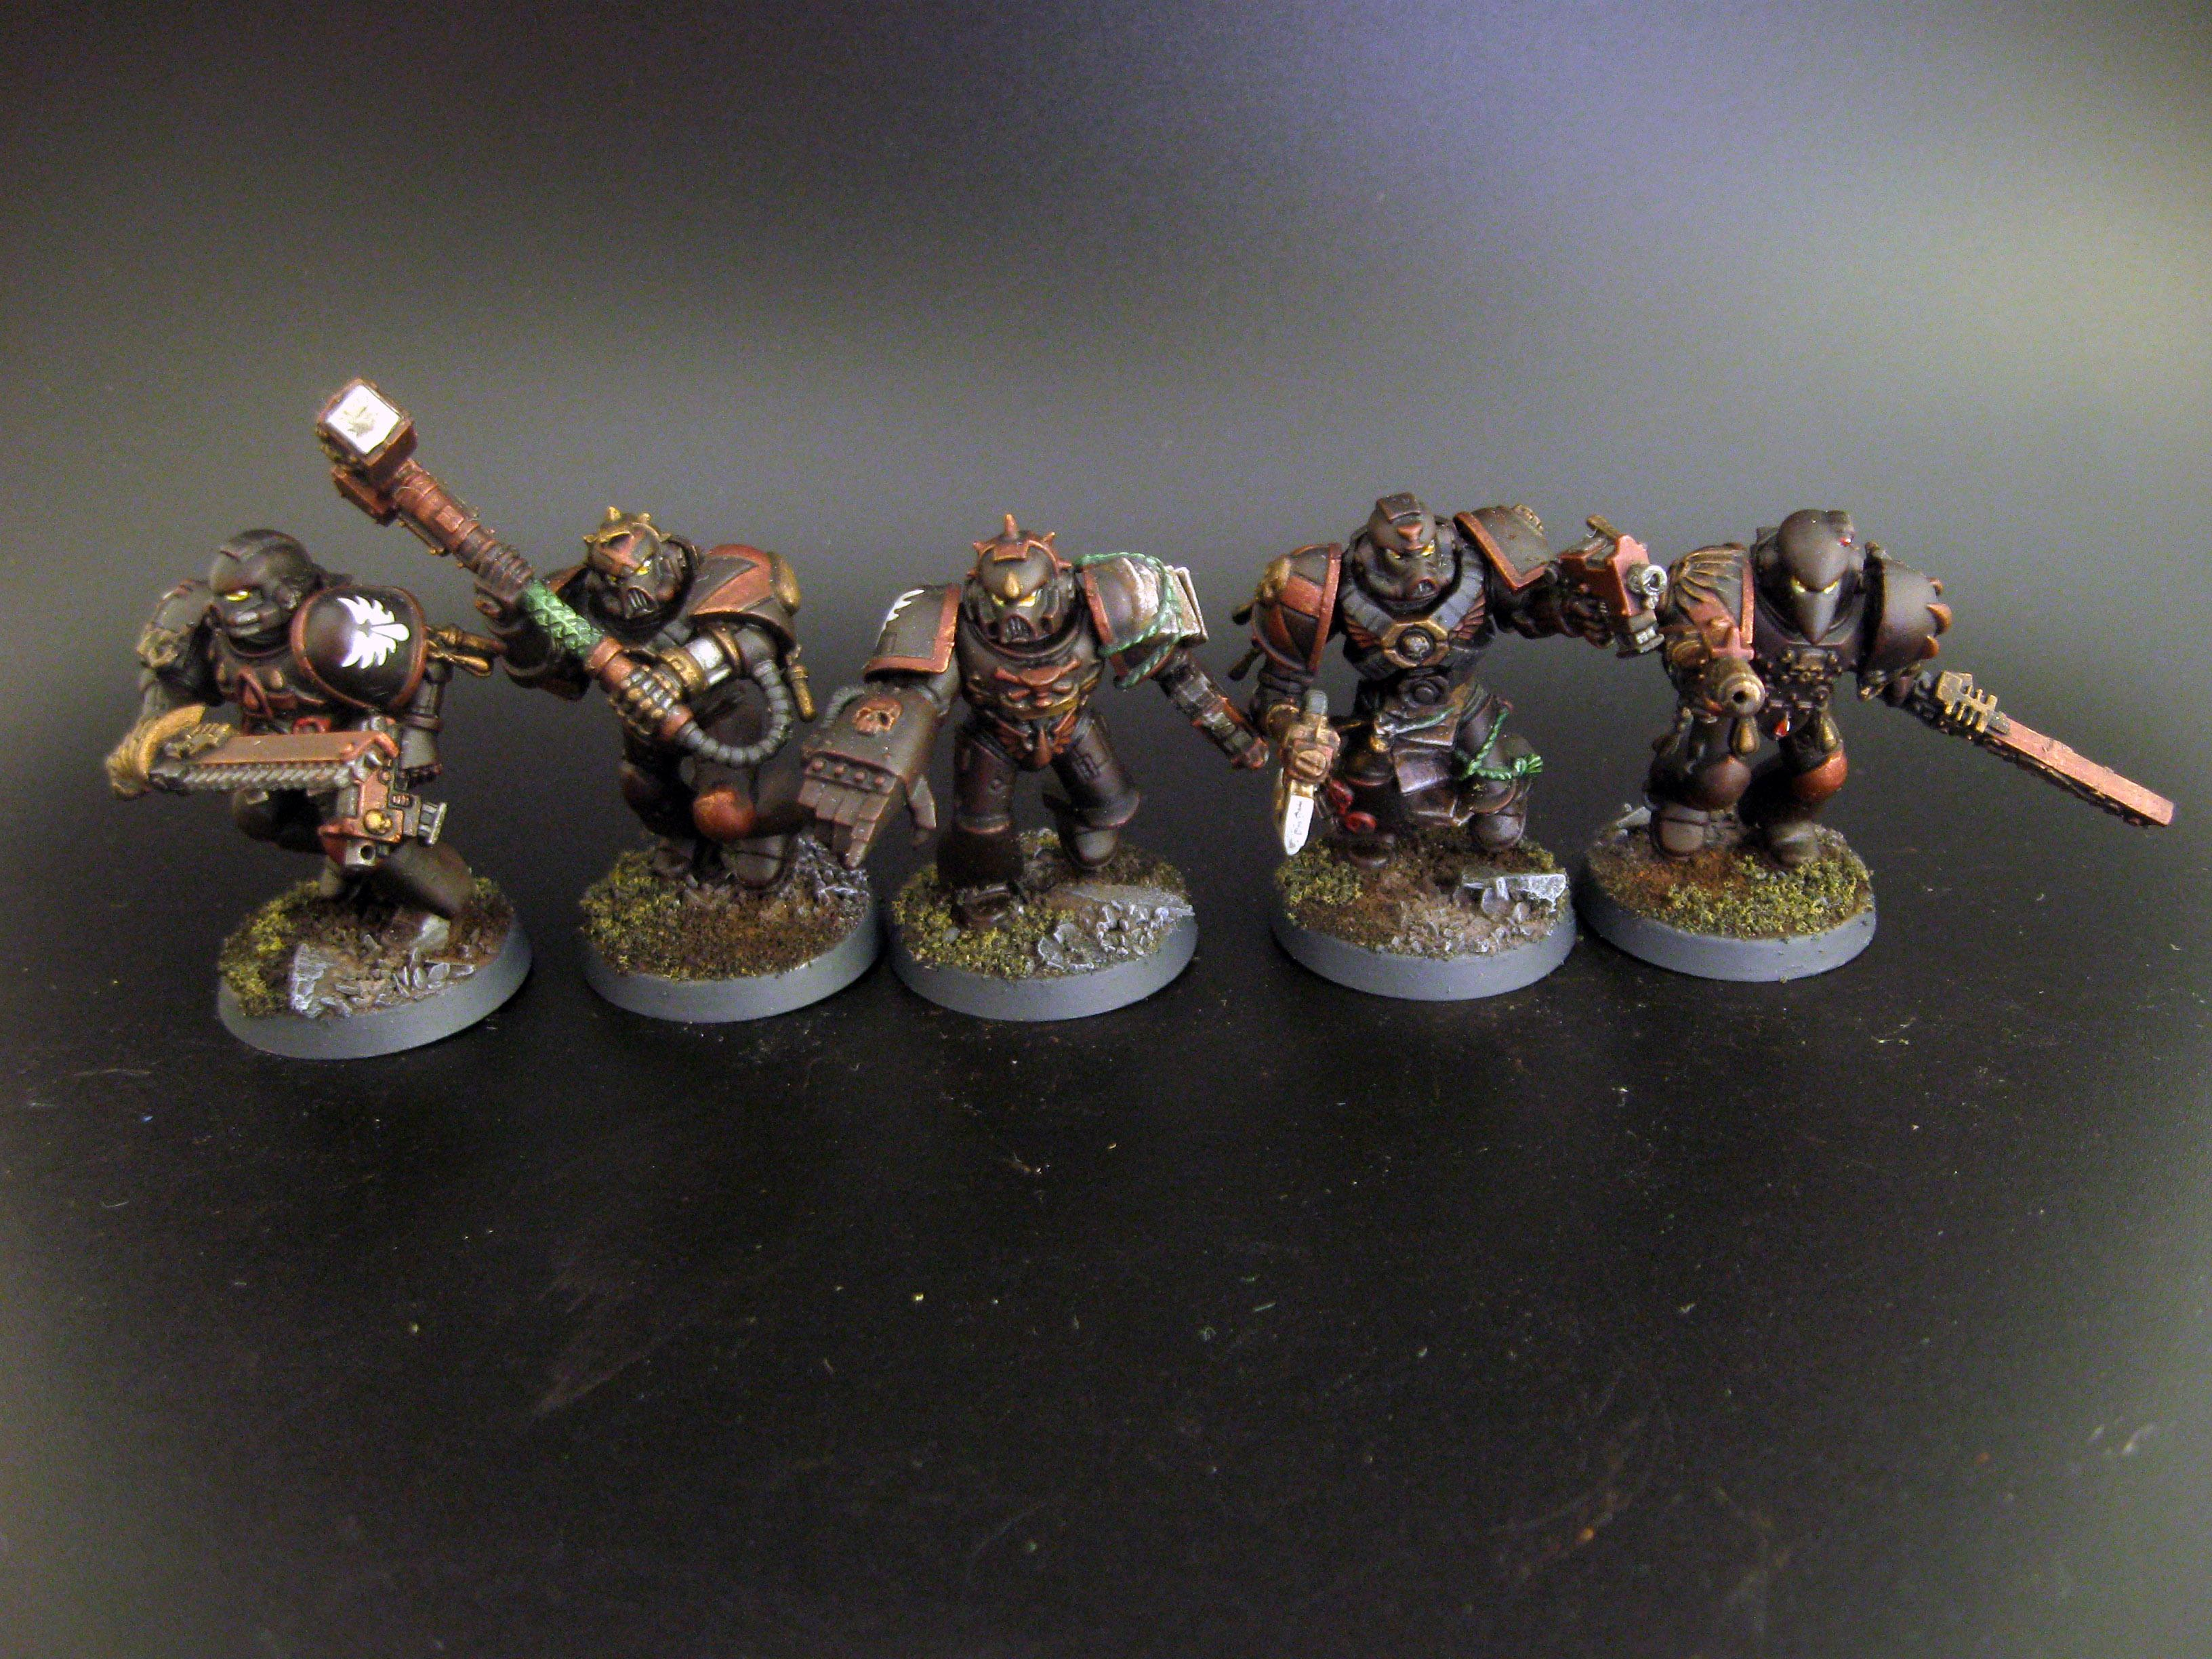 Angel, Blood, Death, Forge World, Guard, Honour, Meph, Sanguinary, Space Marines